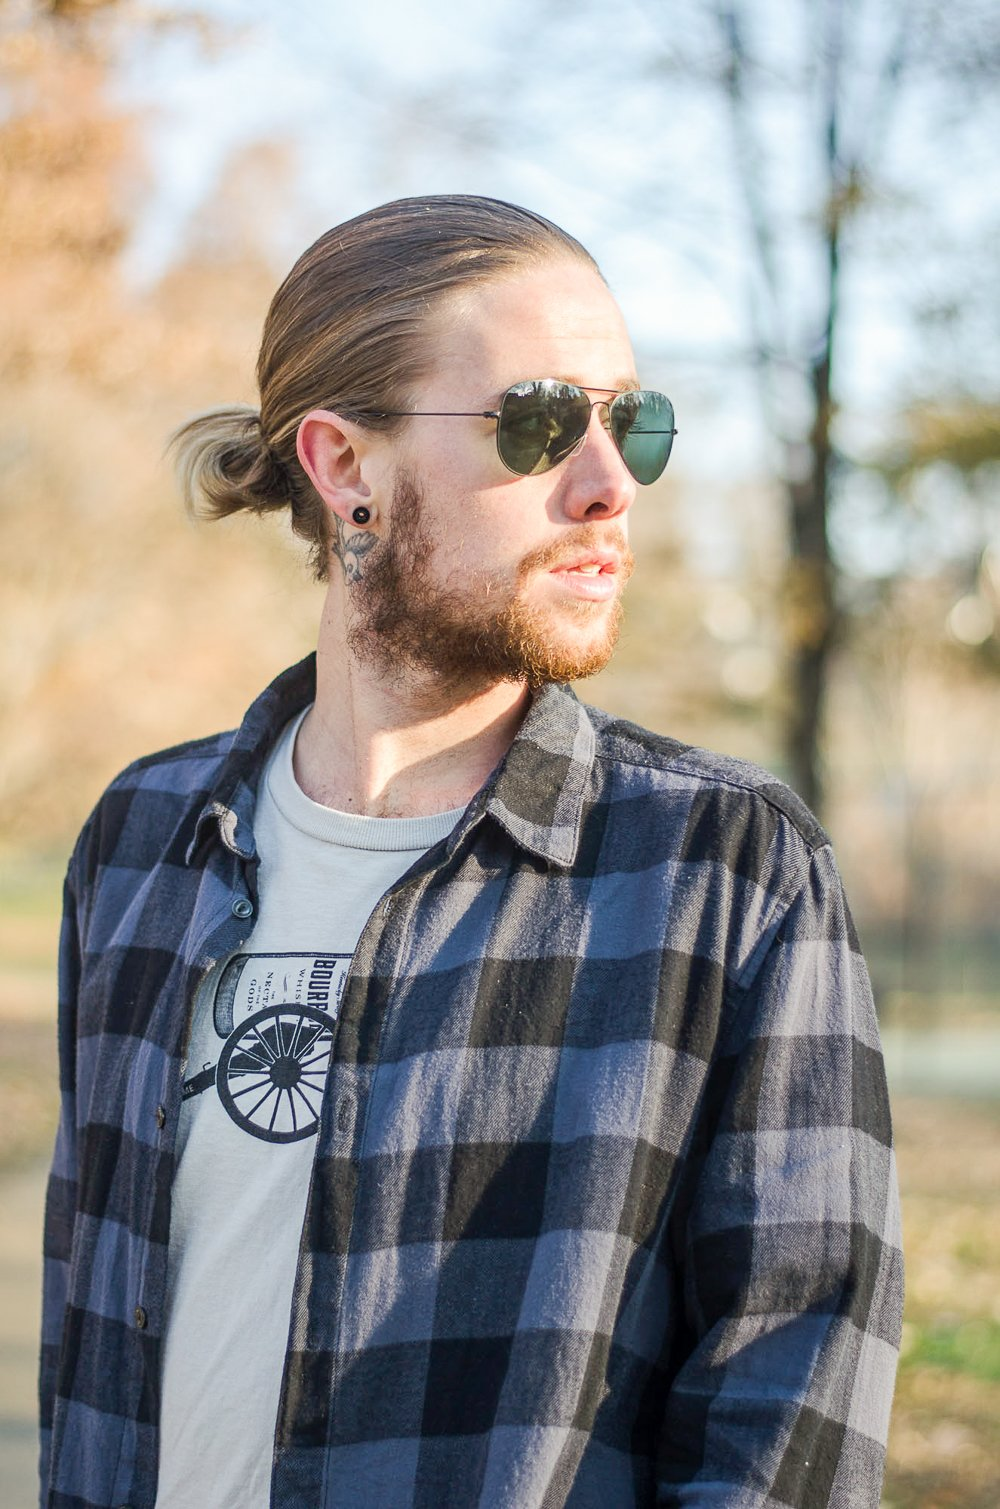 The Kentucky Gent, a Louisville, Kentucky life and style blogger, in Y'allsome Kentucky Bourbon Tee, H&M Plaid Shirt, Levi's Made & Crafted Denim Pants, Richer Poorer Socks, Volley High Top Sneakers, and Ray-Ban Aviator Sunglasses.